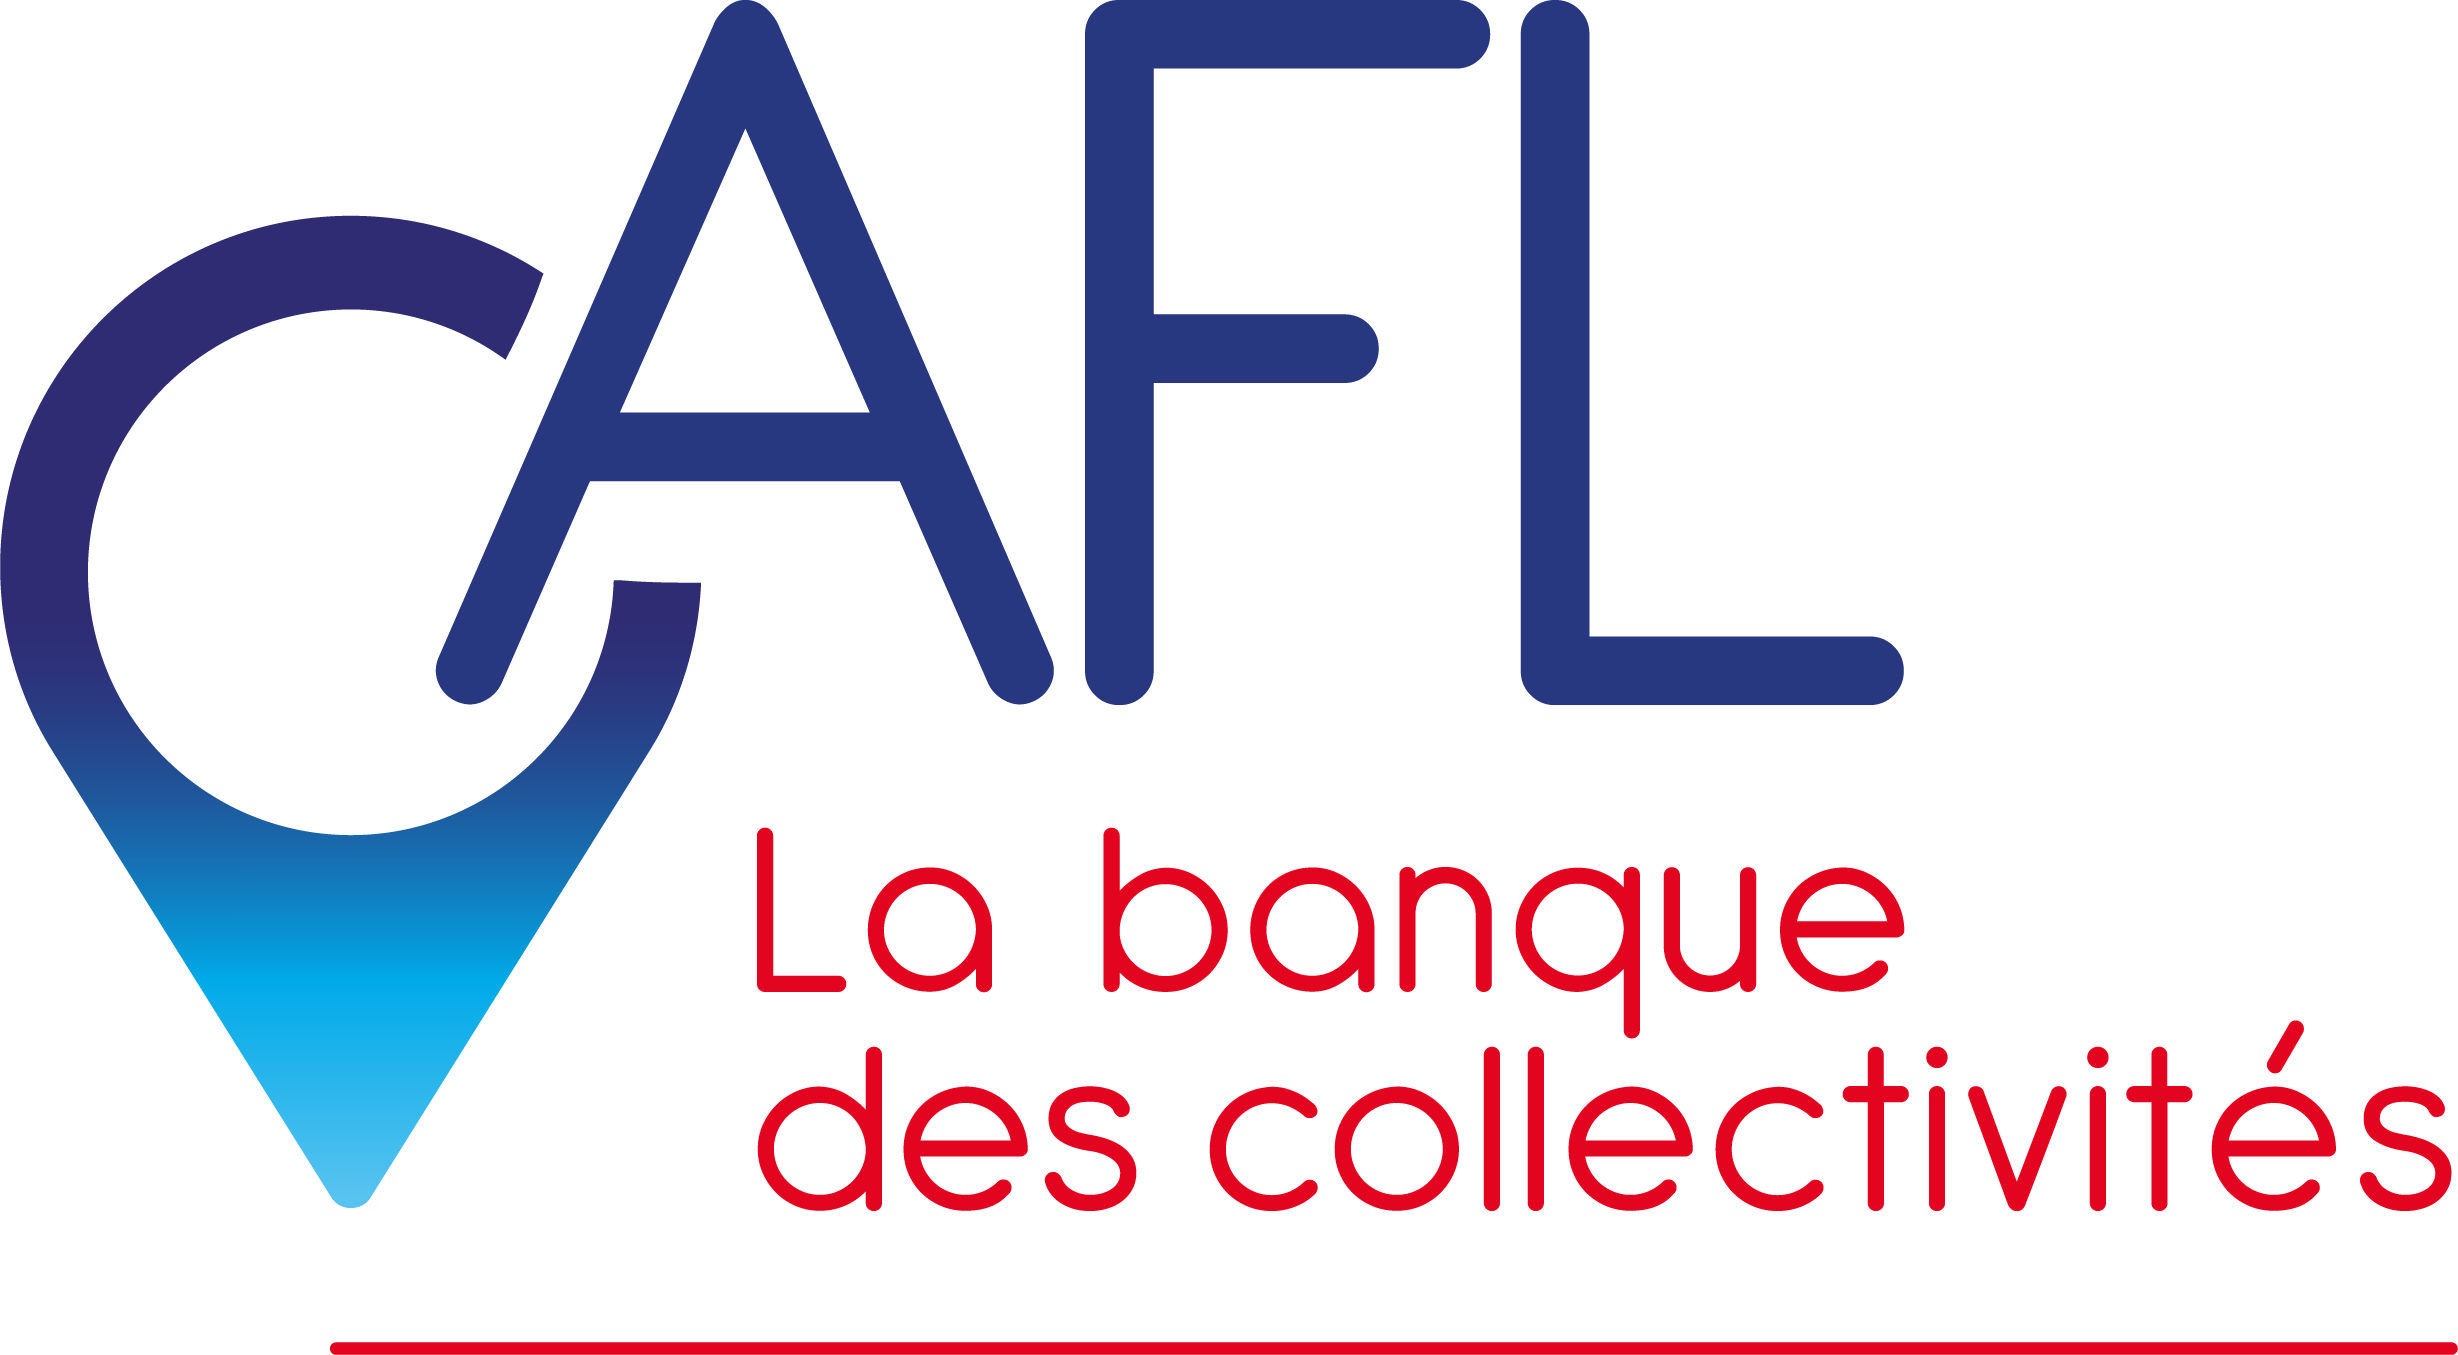 AFL (Agence France Locale)